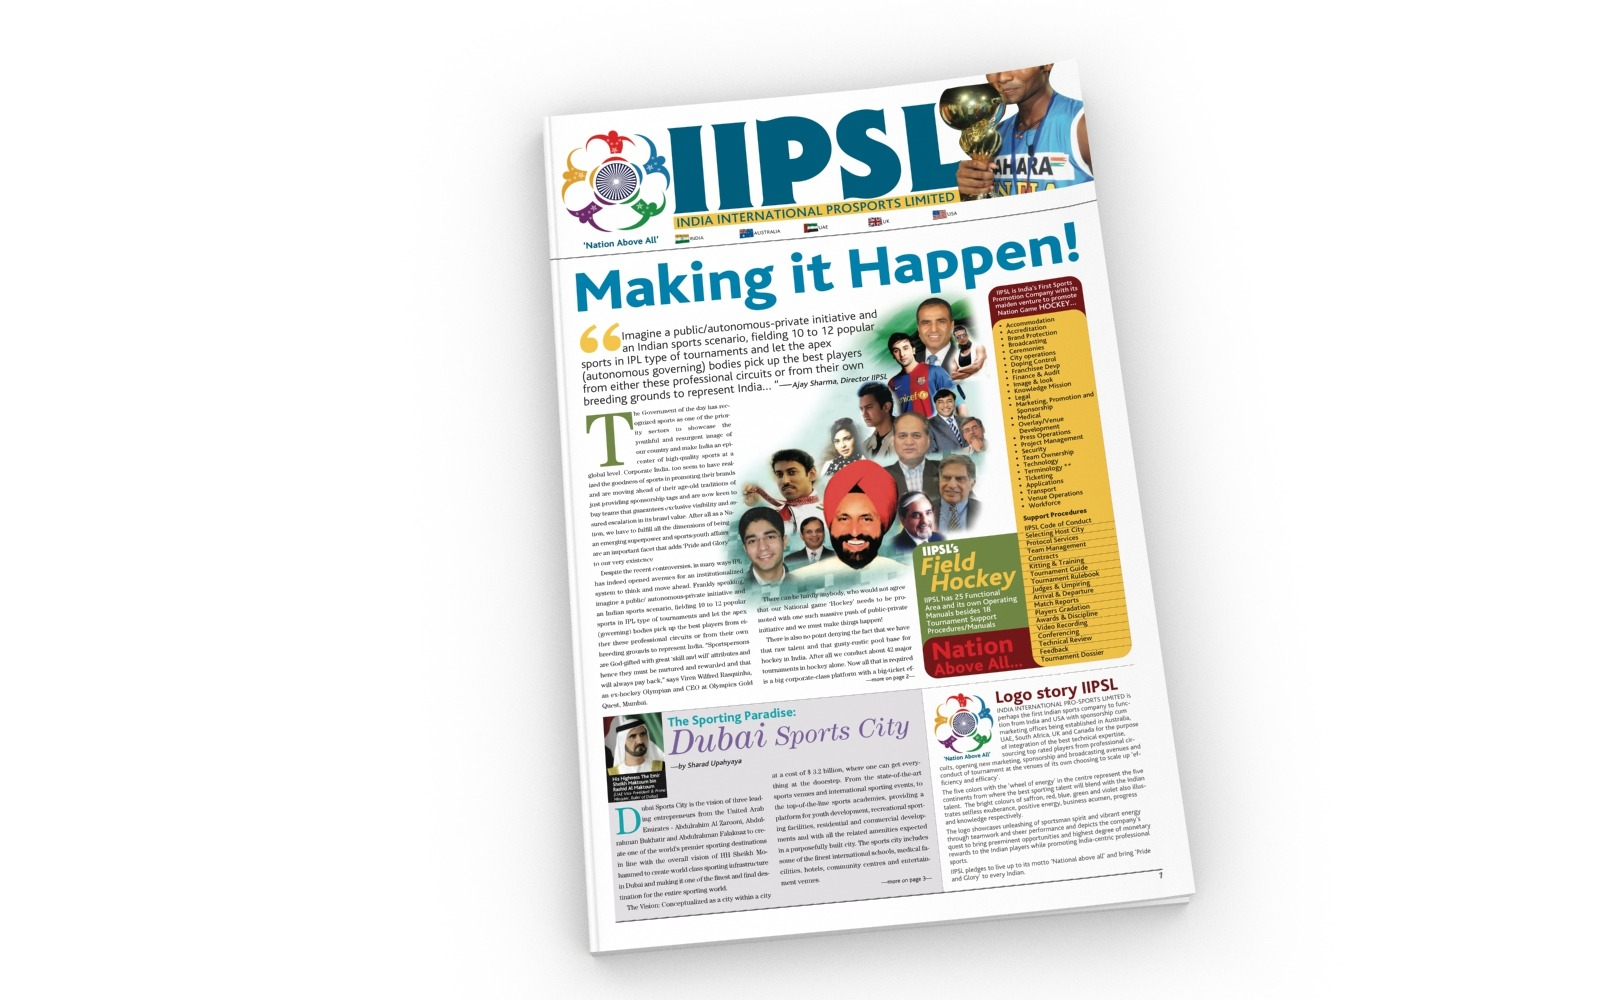 Tabloid magazine cover page layout design for IIPSL, Sports